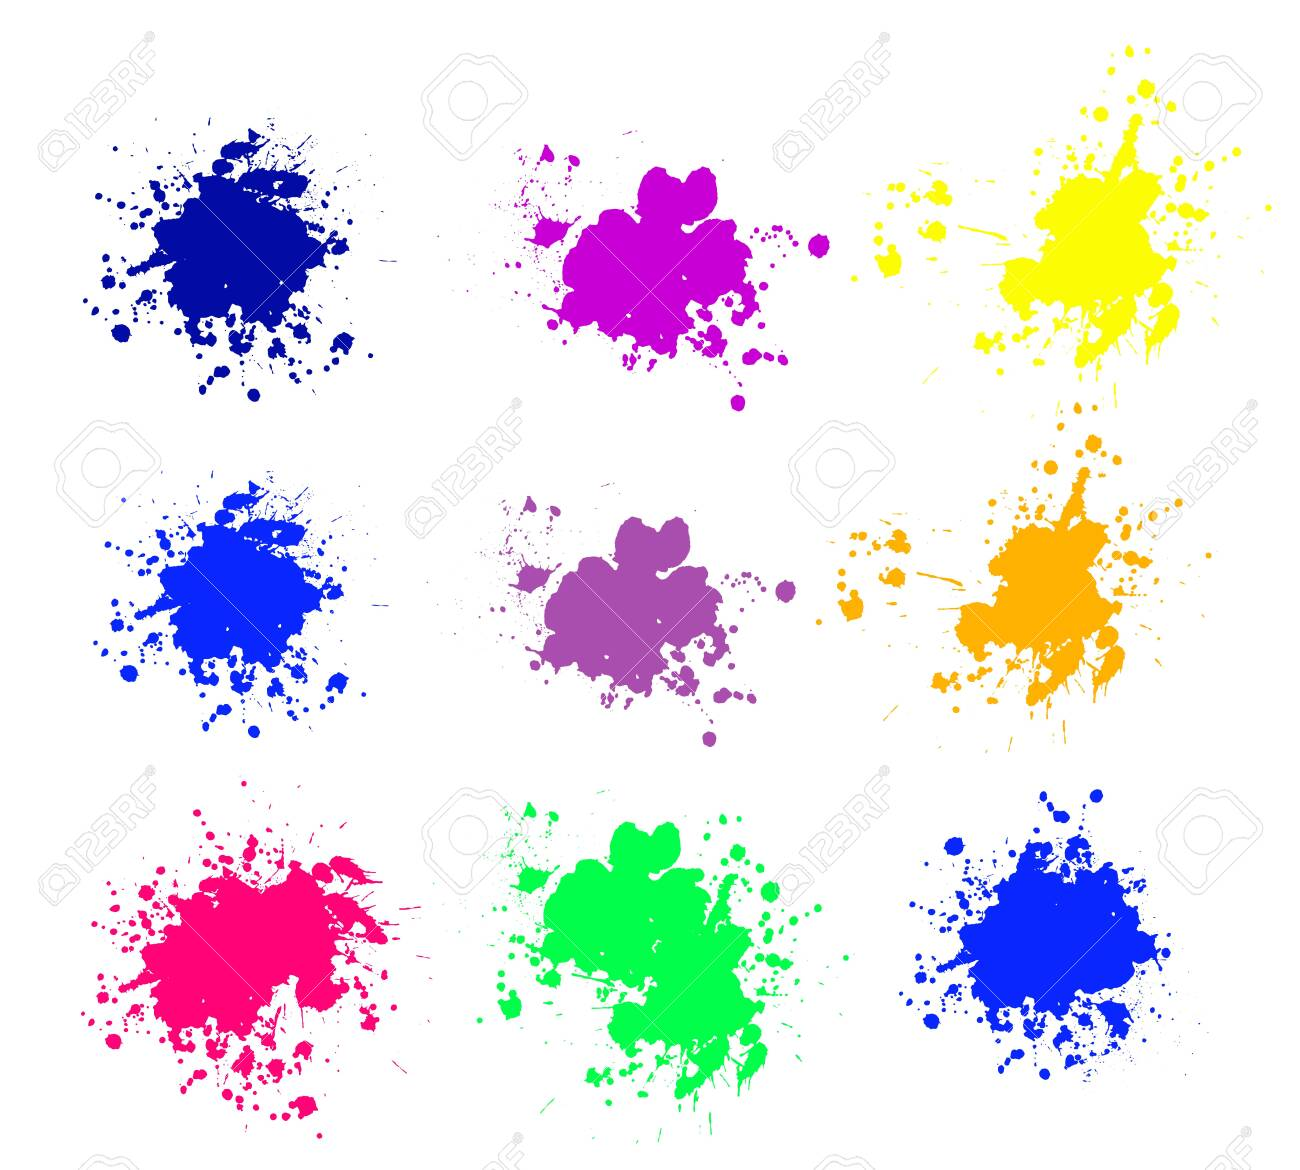 Grunge splatters. Abstract background. Grunge text banners. Color ink splashes. - 134224357